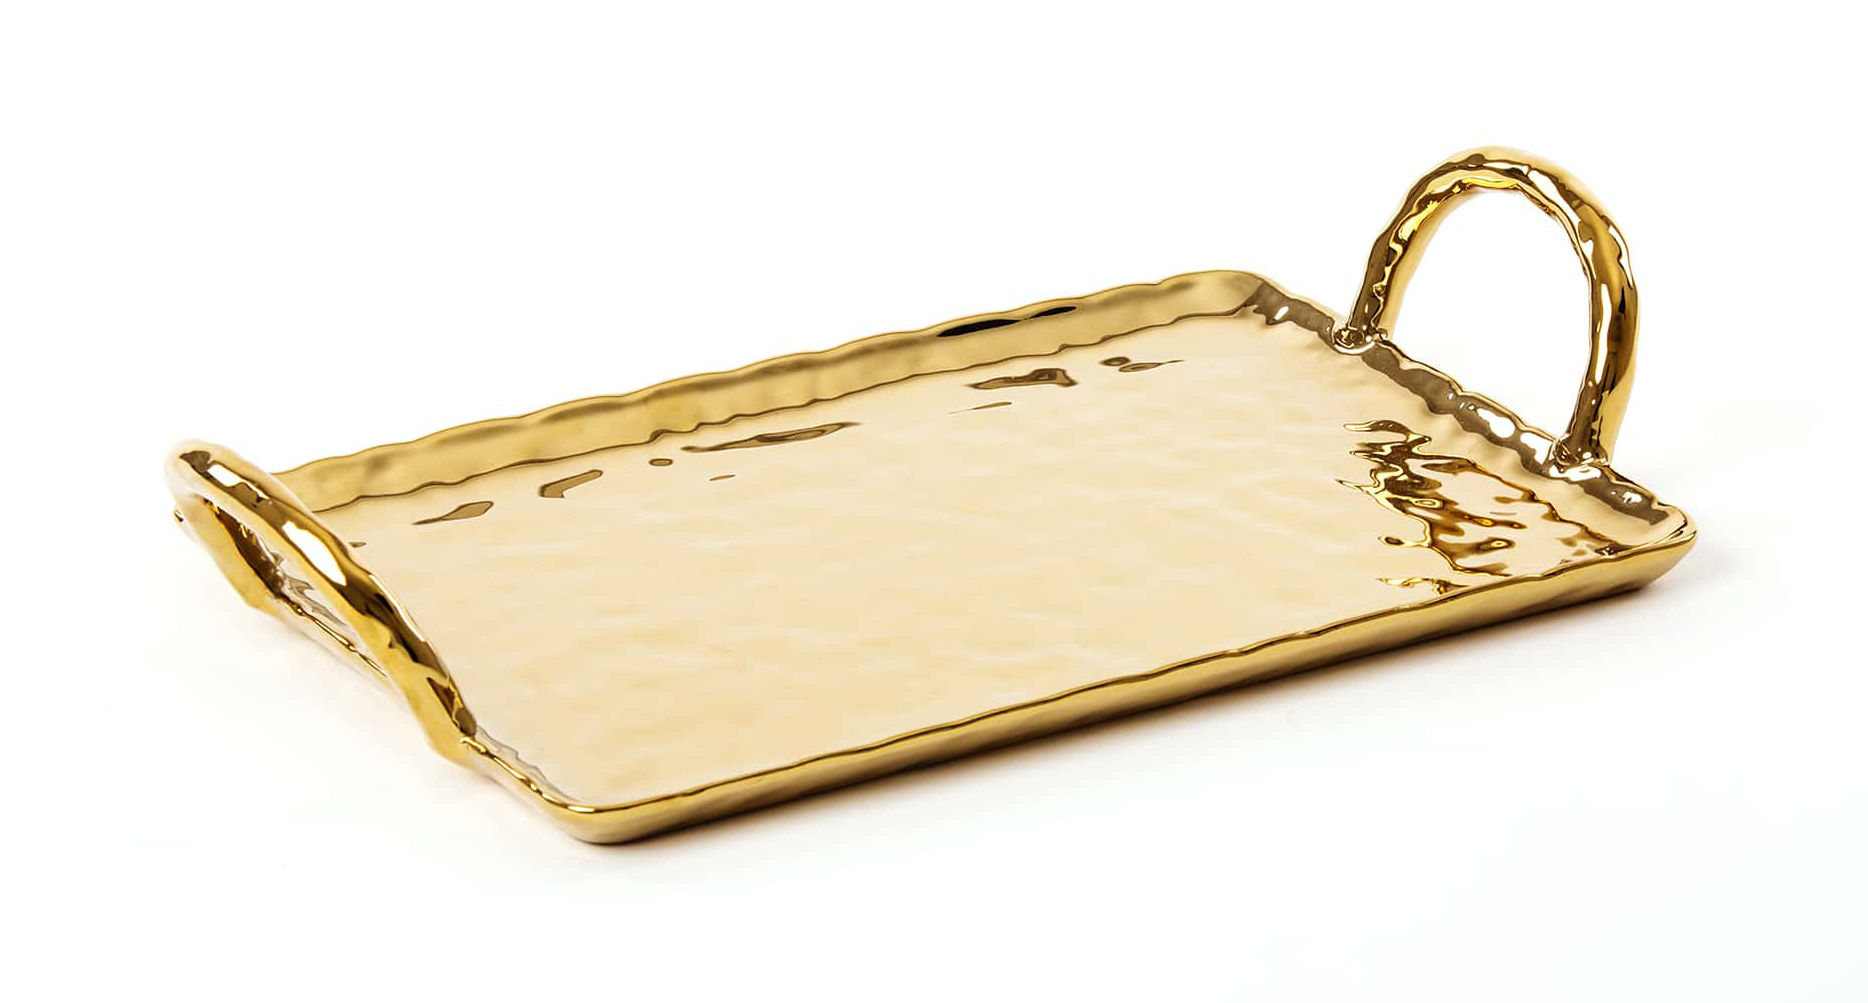 Tableware - Trays - Fingers Tray - / 33 x 20 cm by Seletti - Gold - China